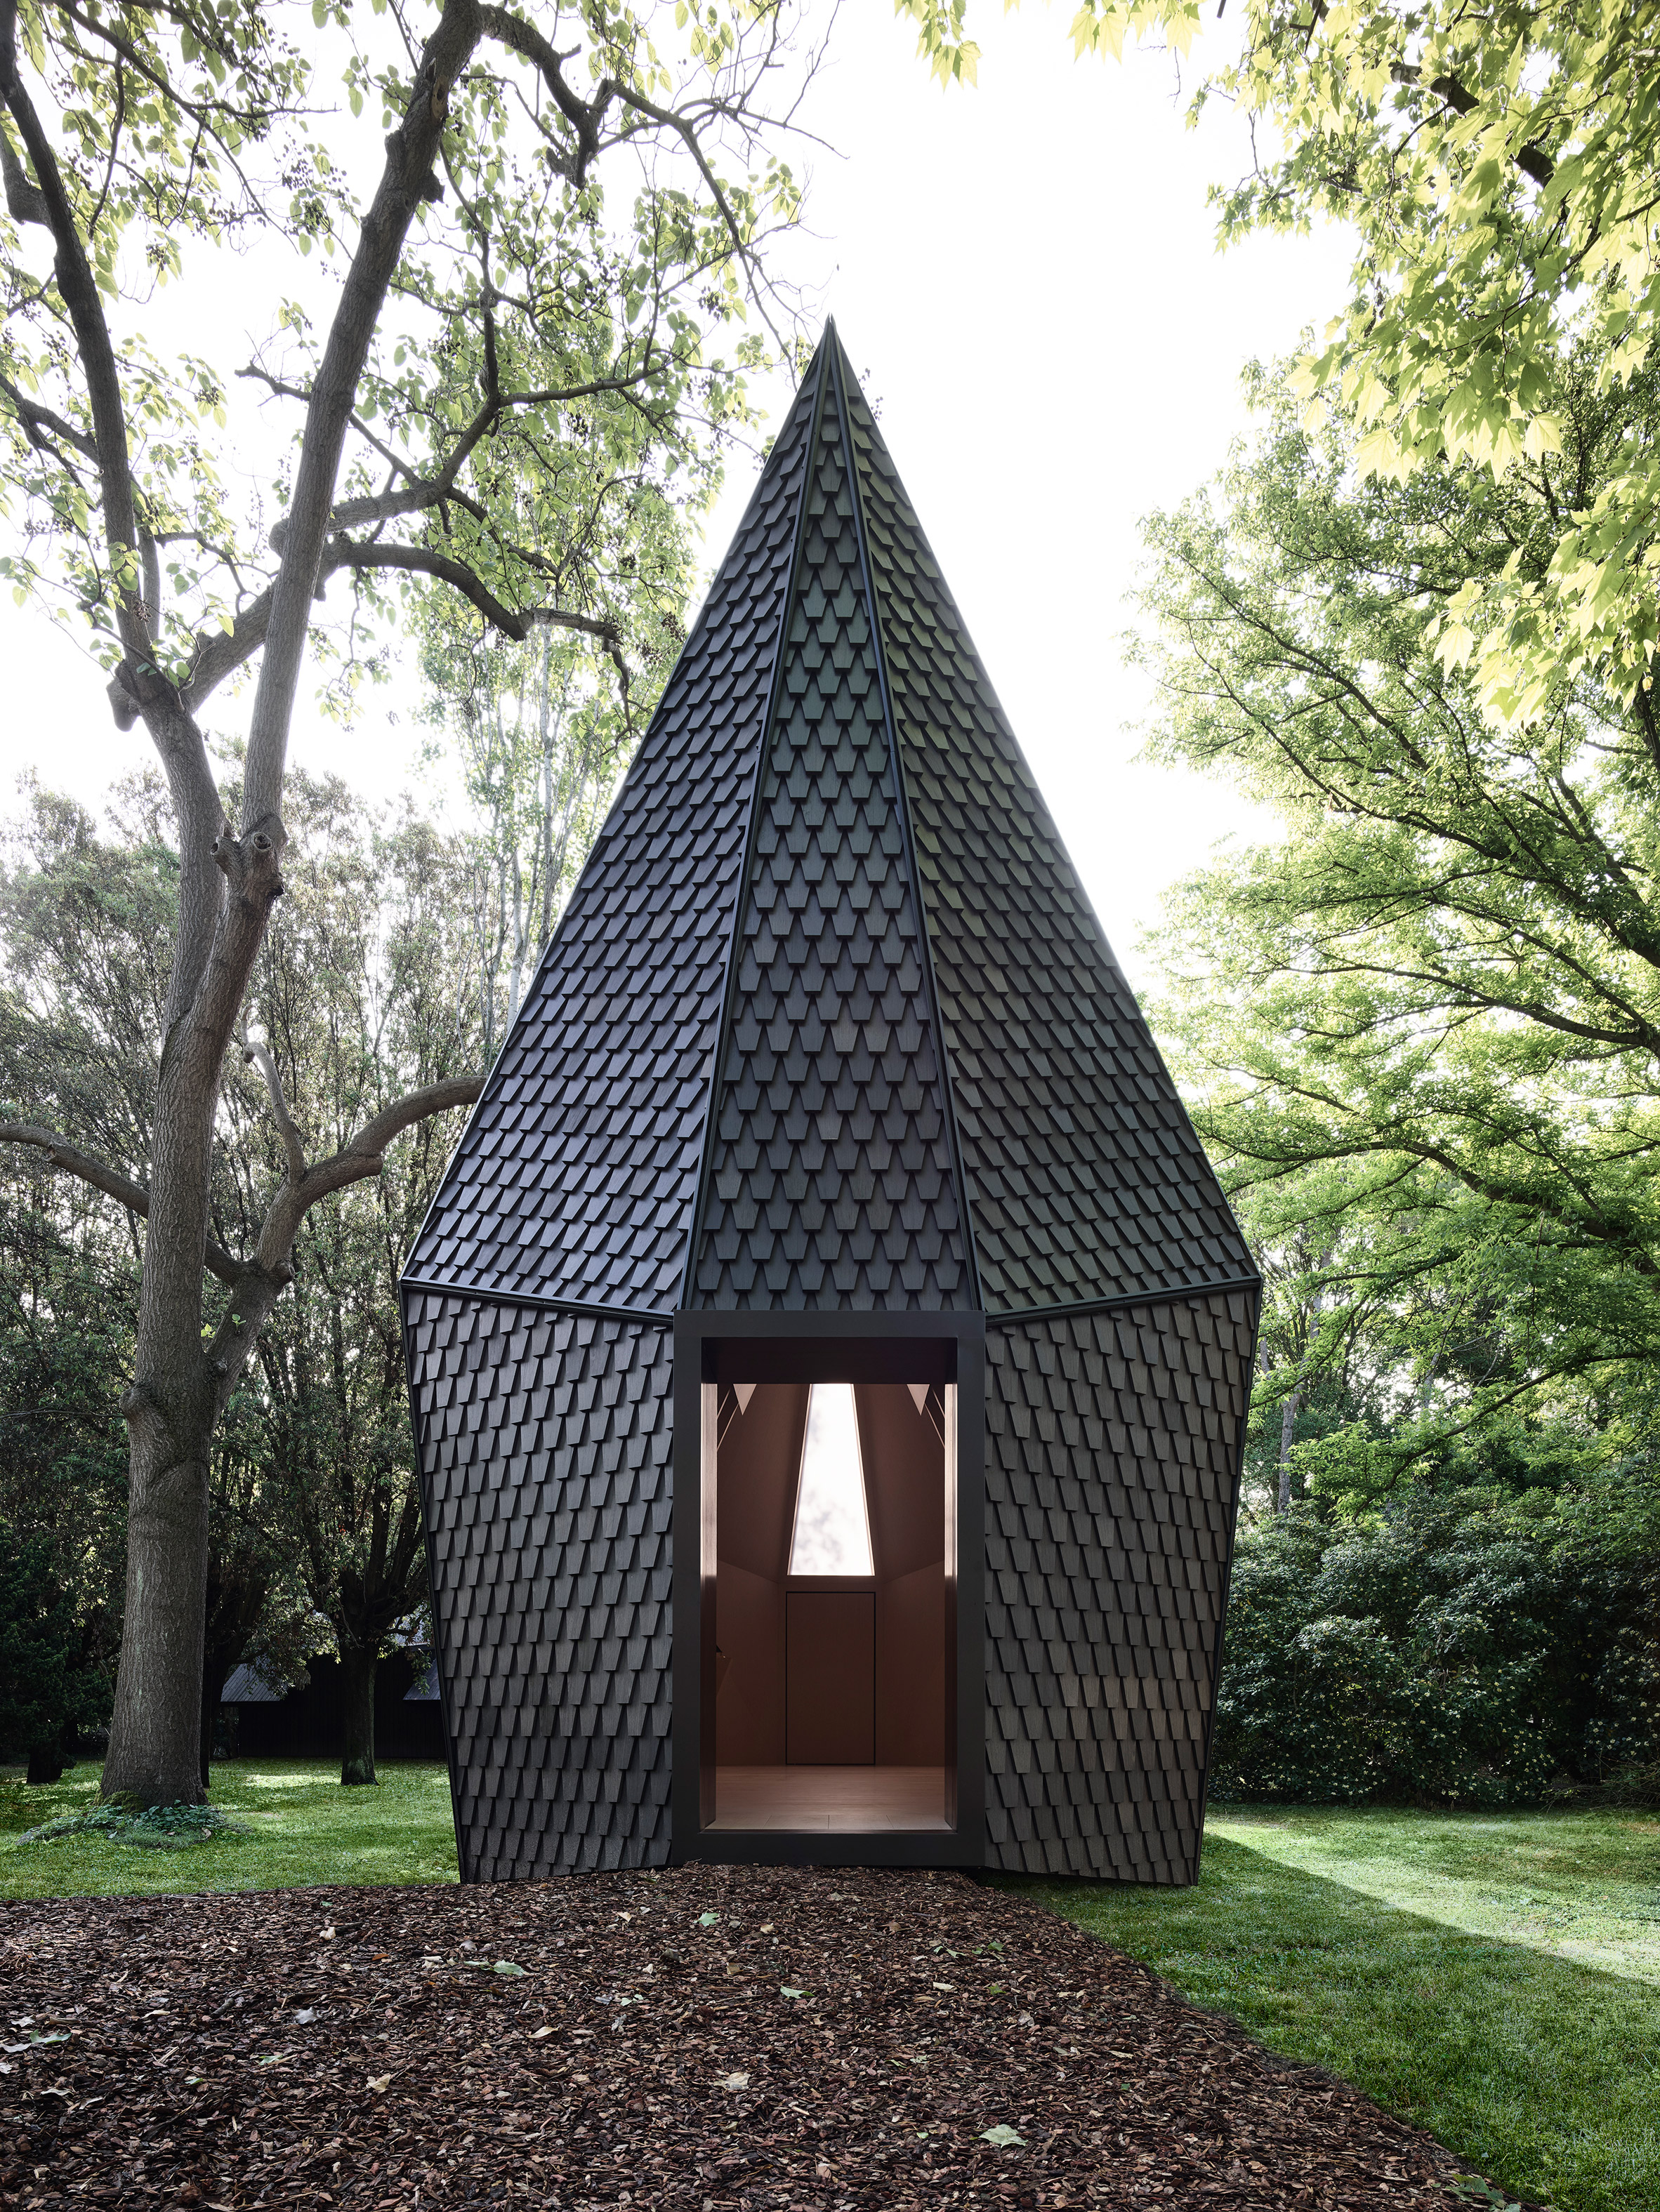 Vatican's Venice Biennale pavilion made using bespoke shingles by Alpi